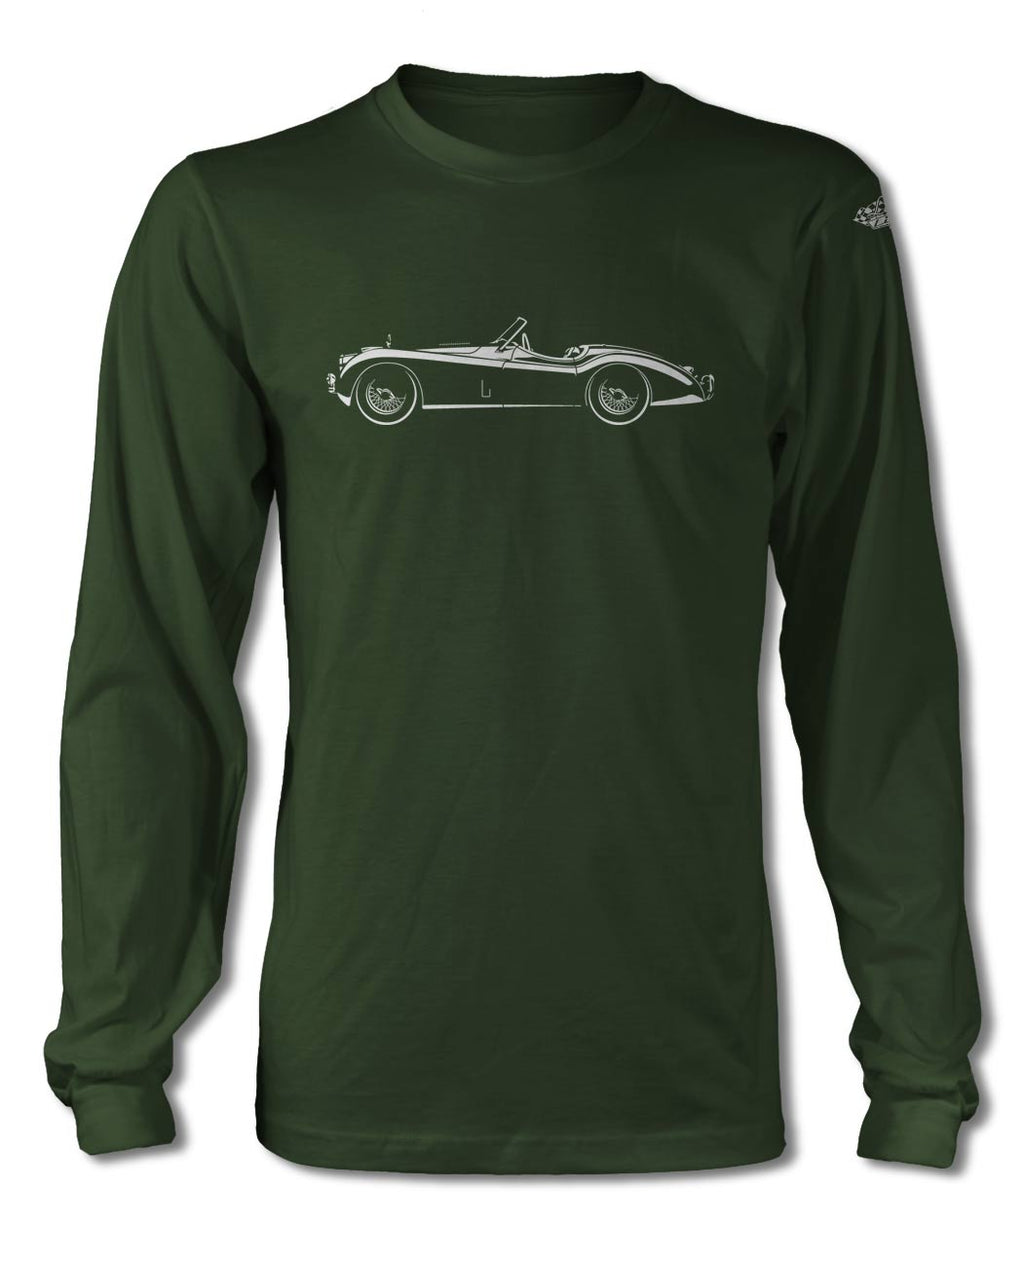 Jaguar XK 120 Convertible T-Shirt - Long Sleeves - Side View